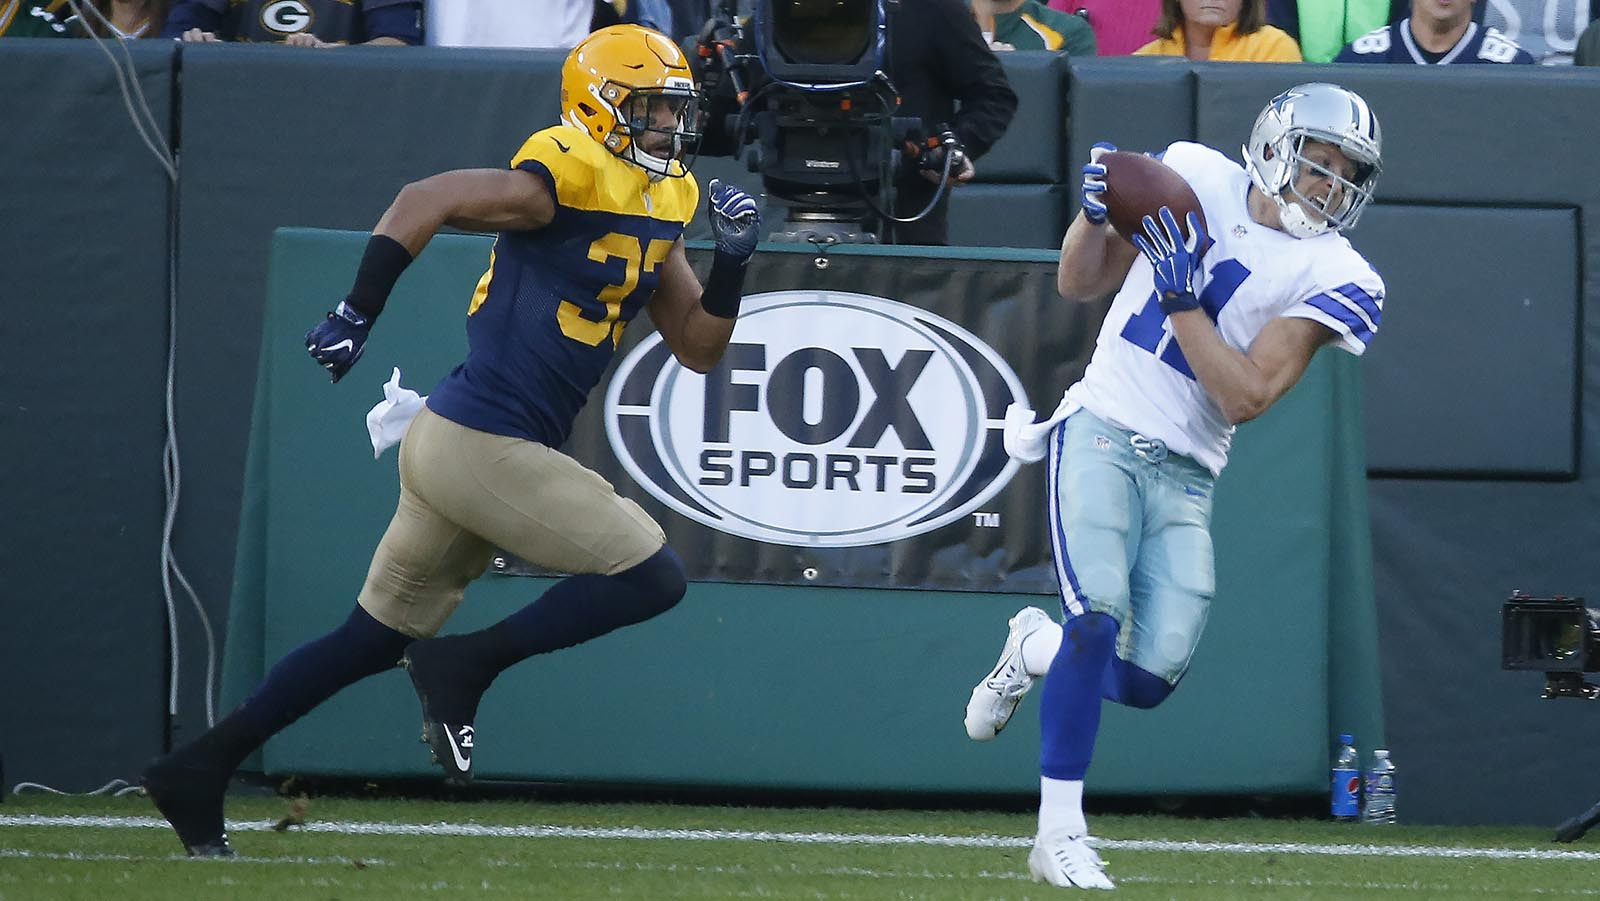 Depleted Packers secondary preparing for quick turnaround